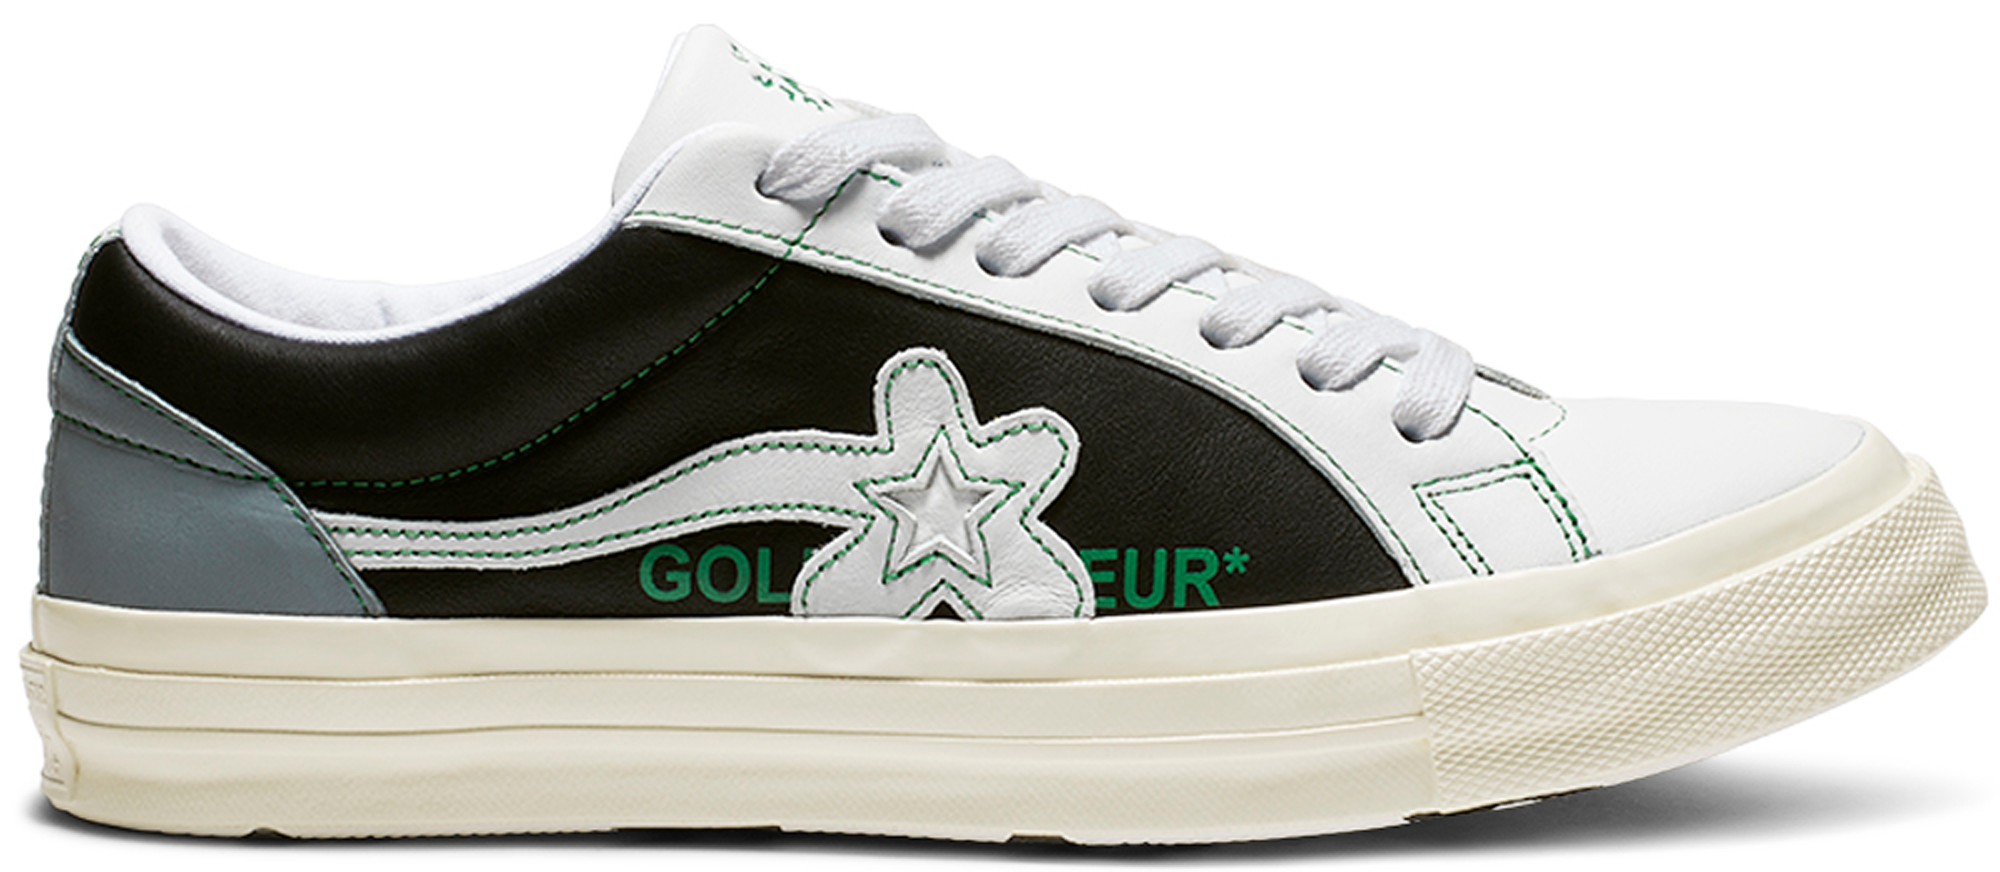 Converse One Star Ox Golf Le Fleur Industrial Pack Black